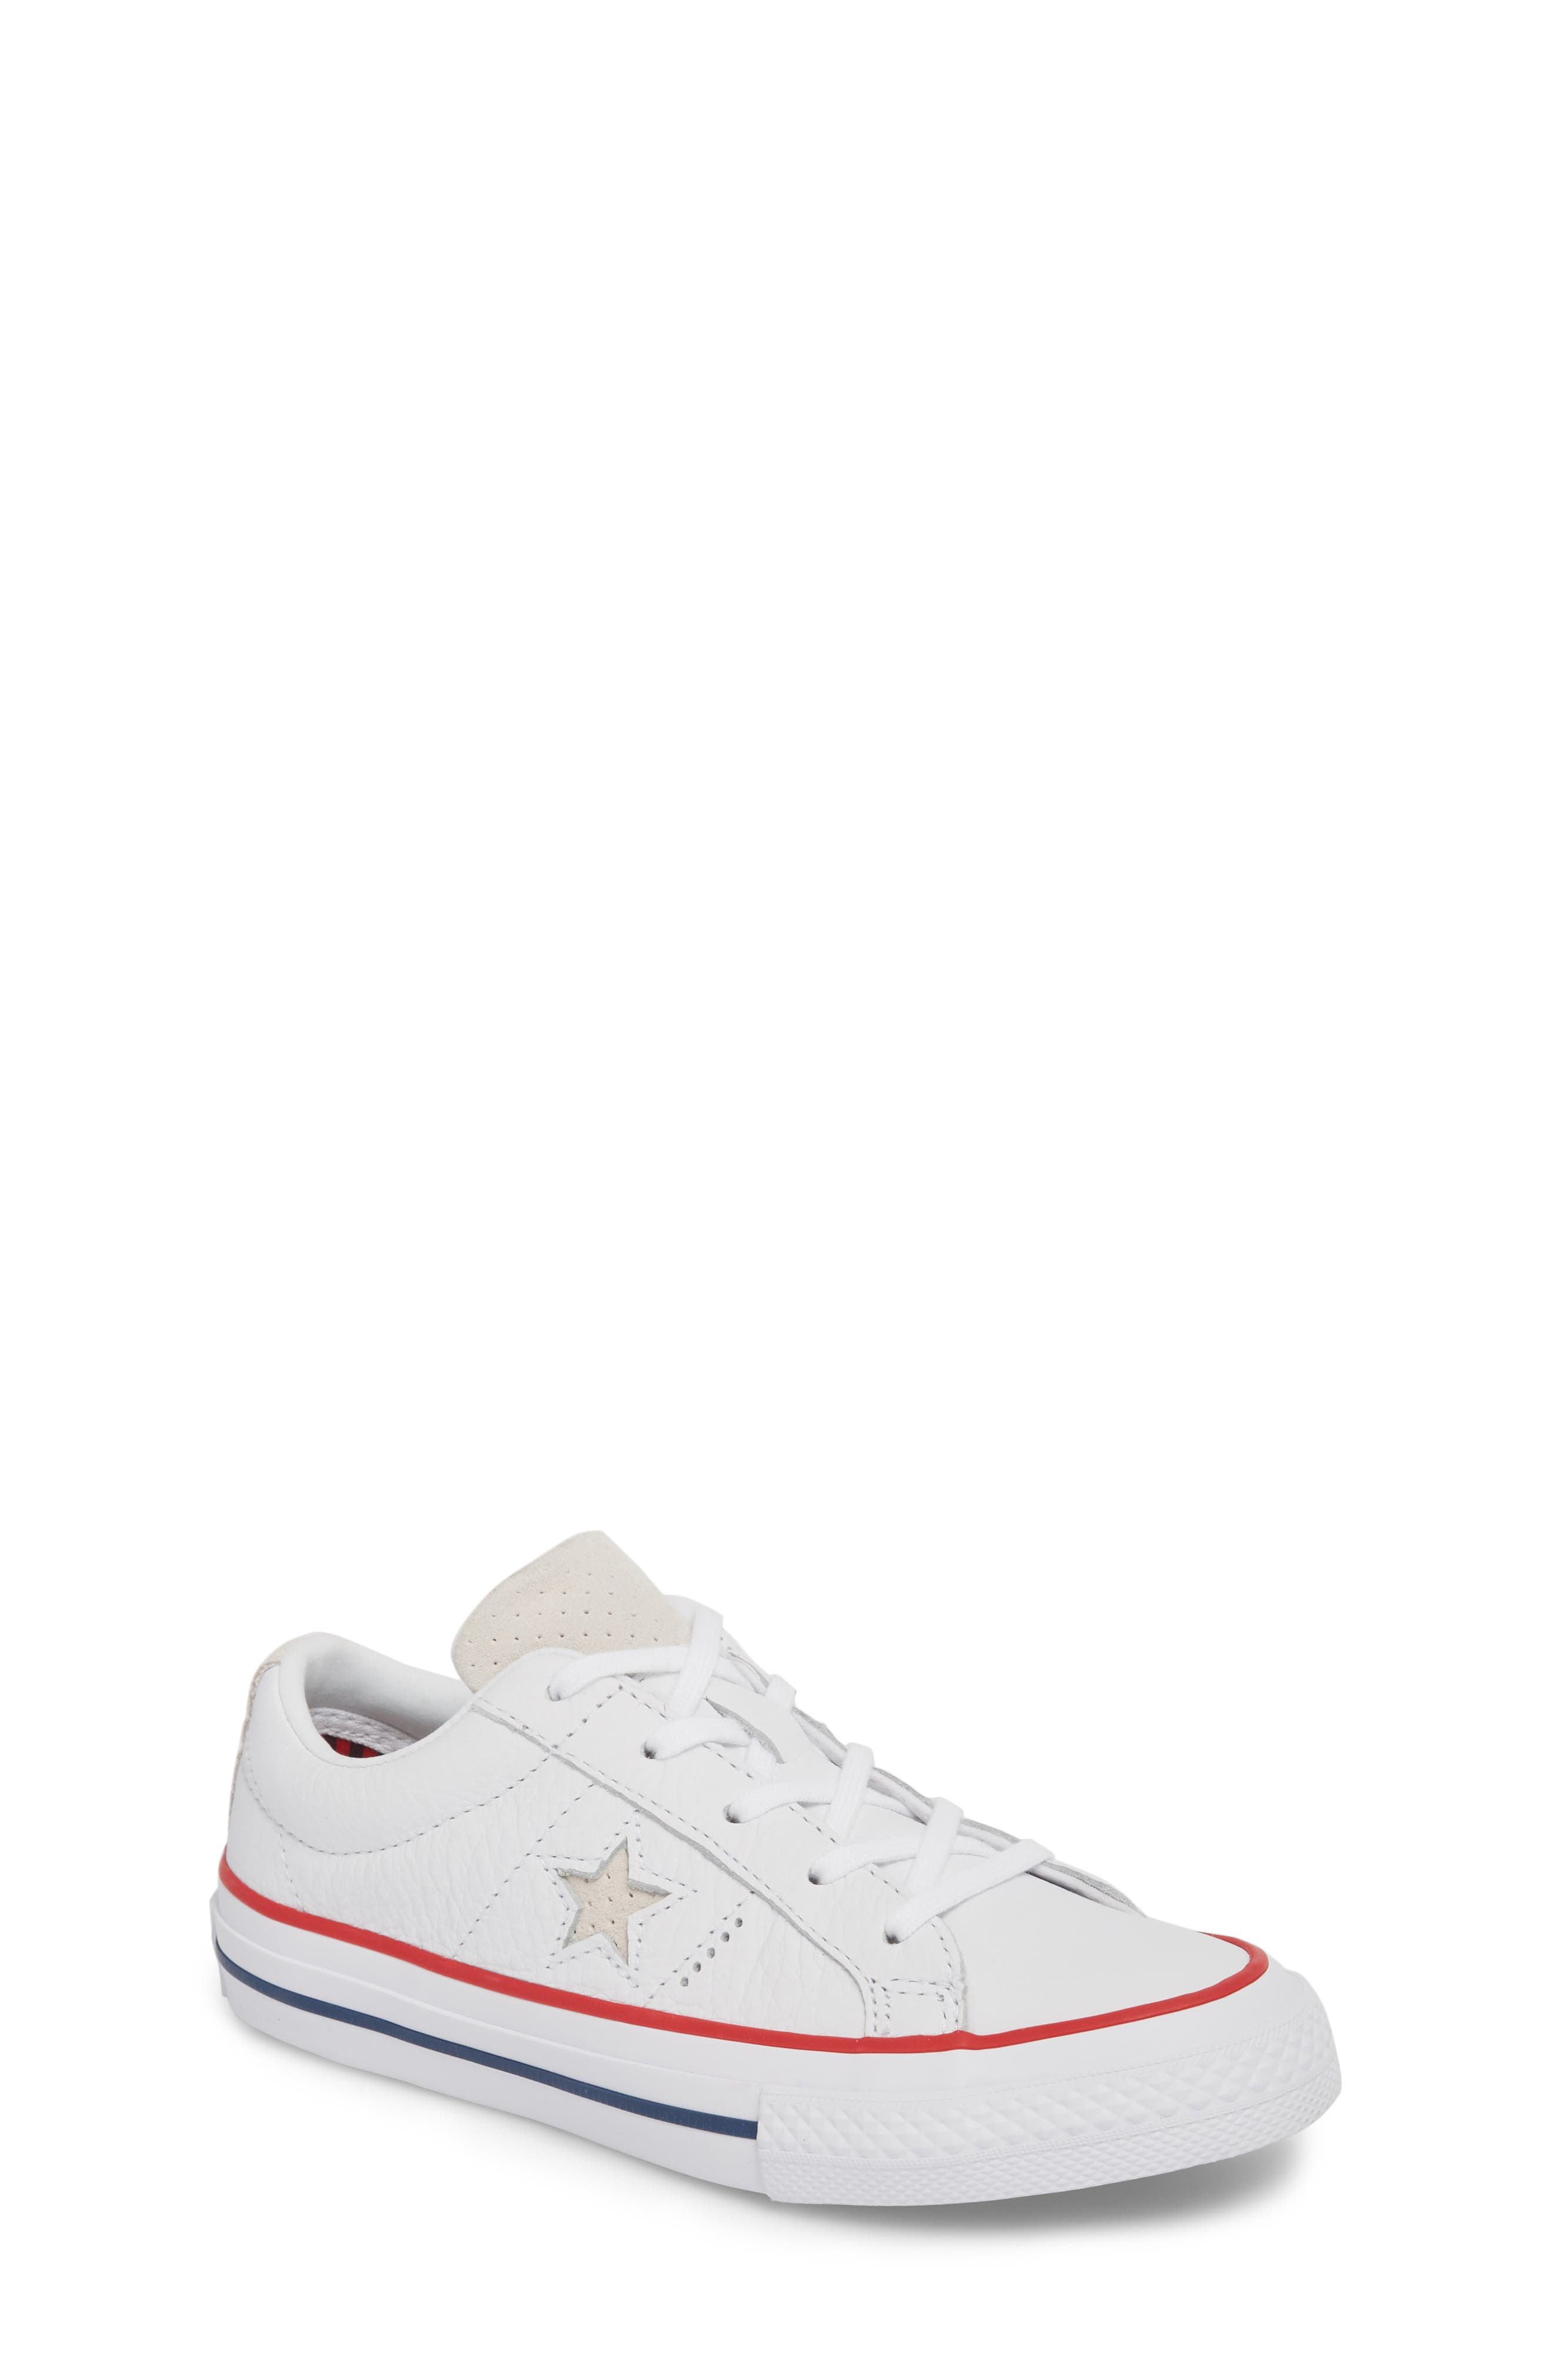 converse shoes new topshop topman careers